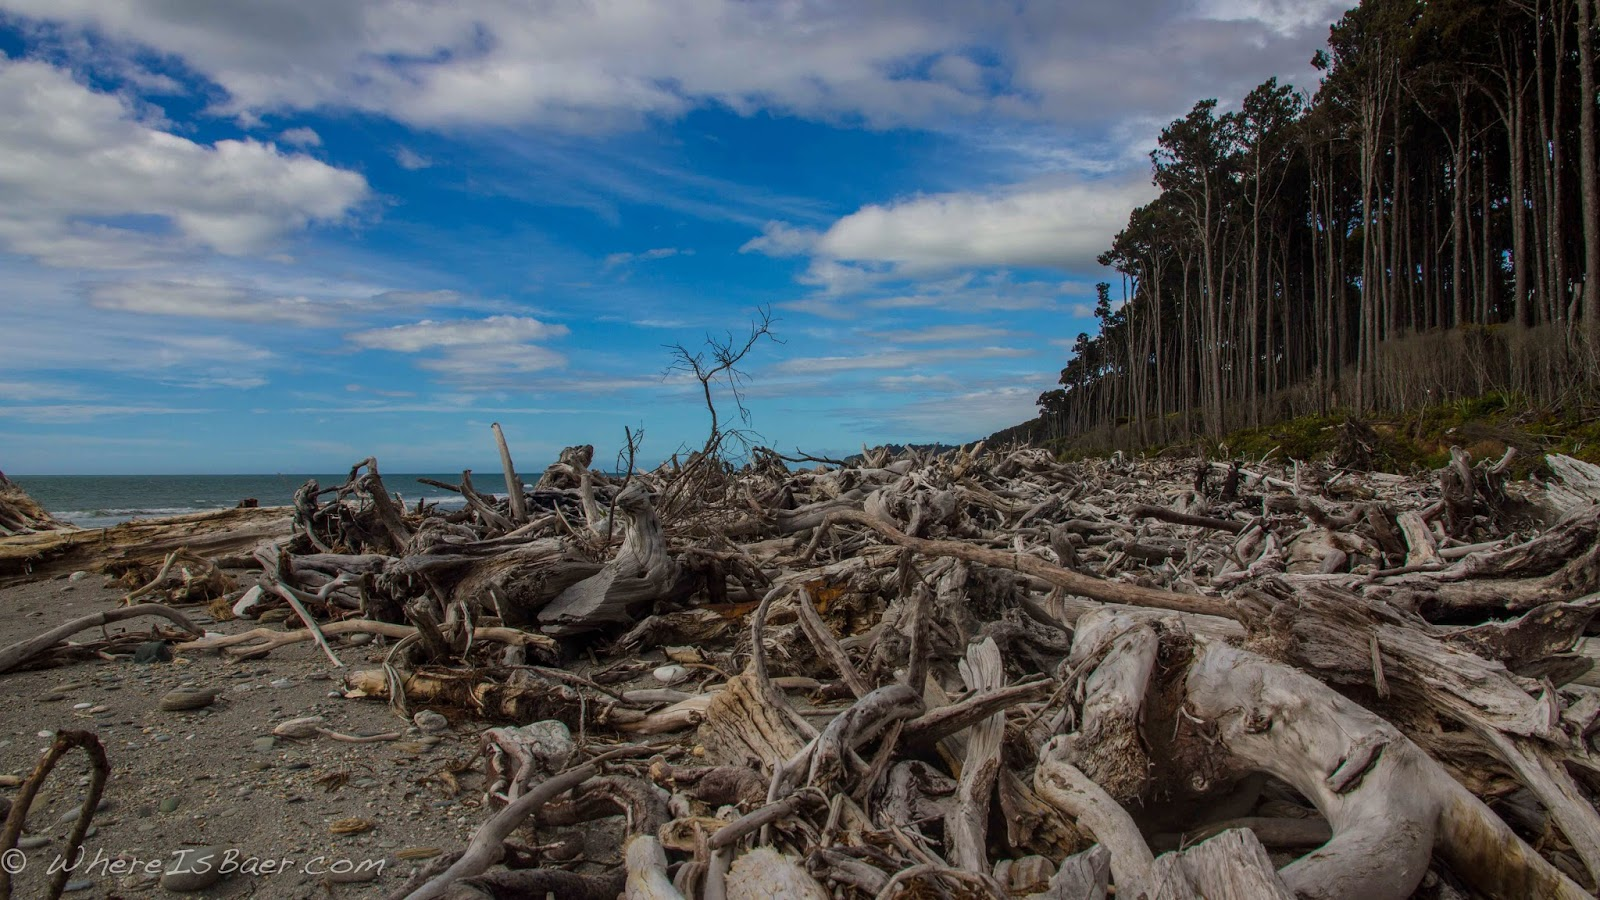 New Zealand beaches drift wood and a staggering forest , whereisbaer.com chris baer